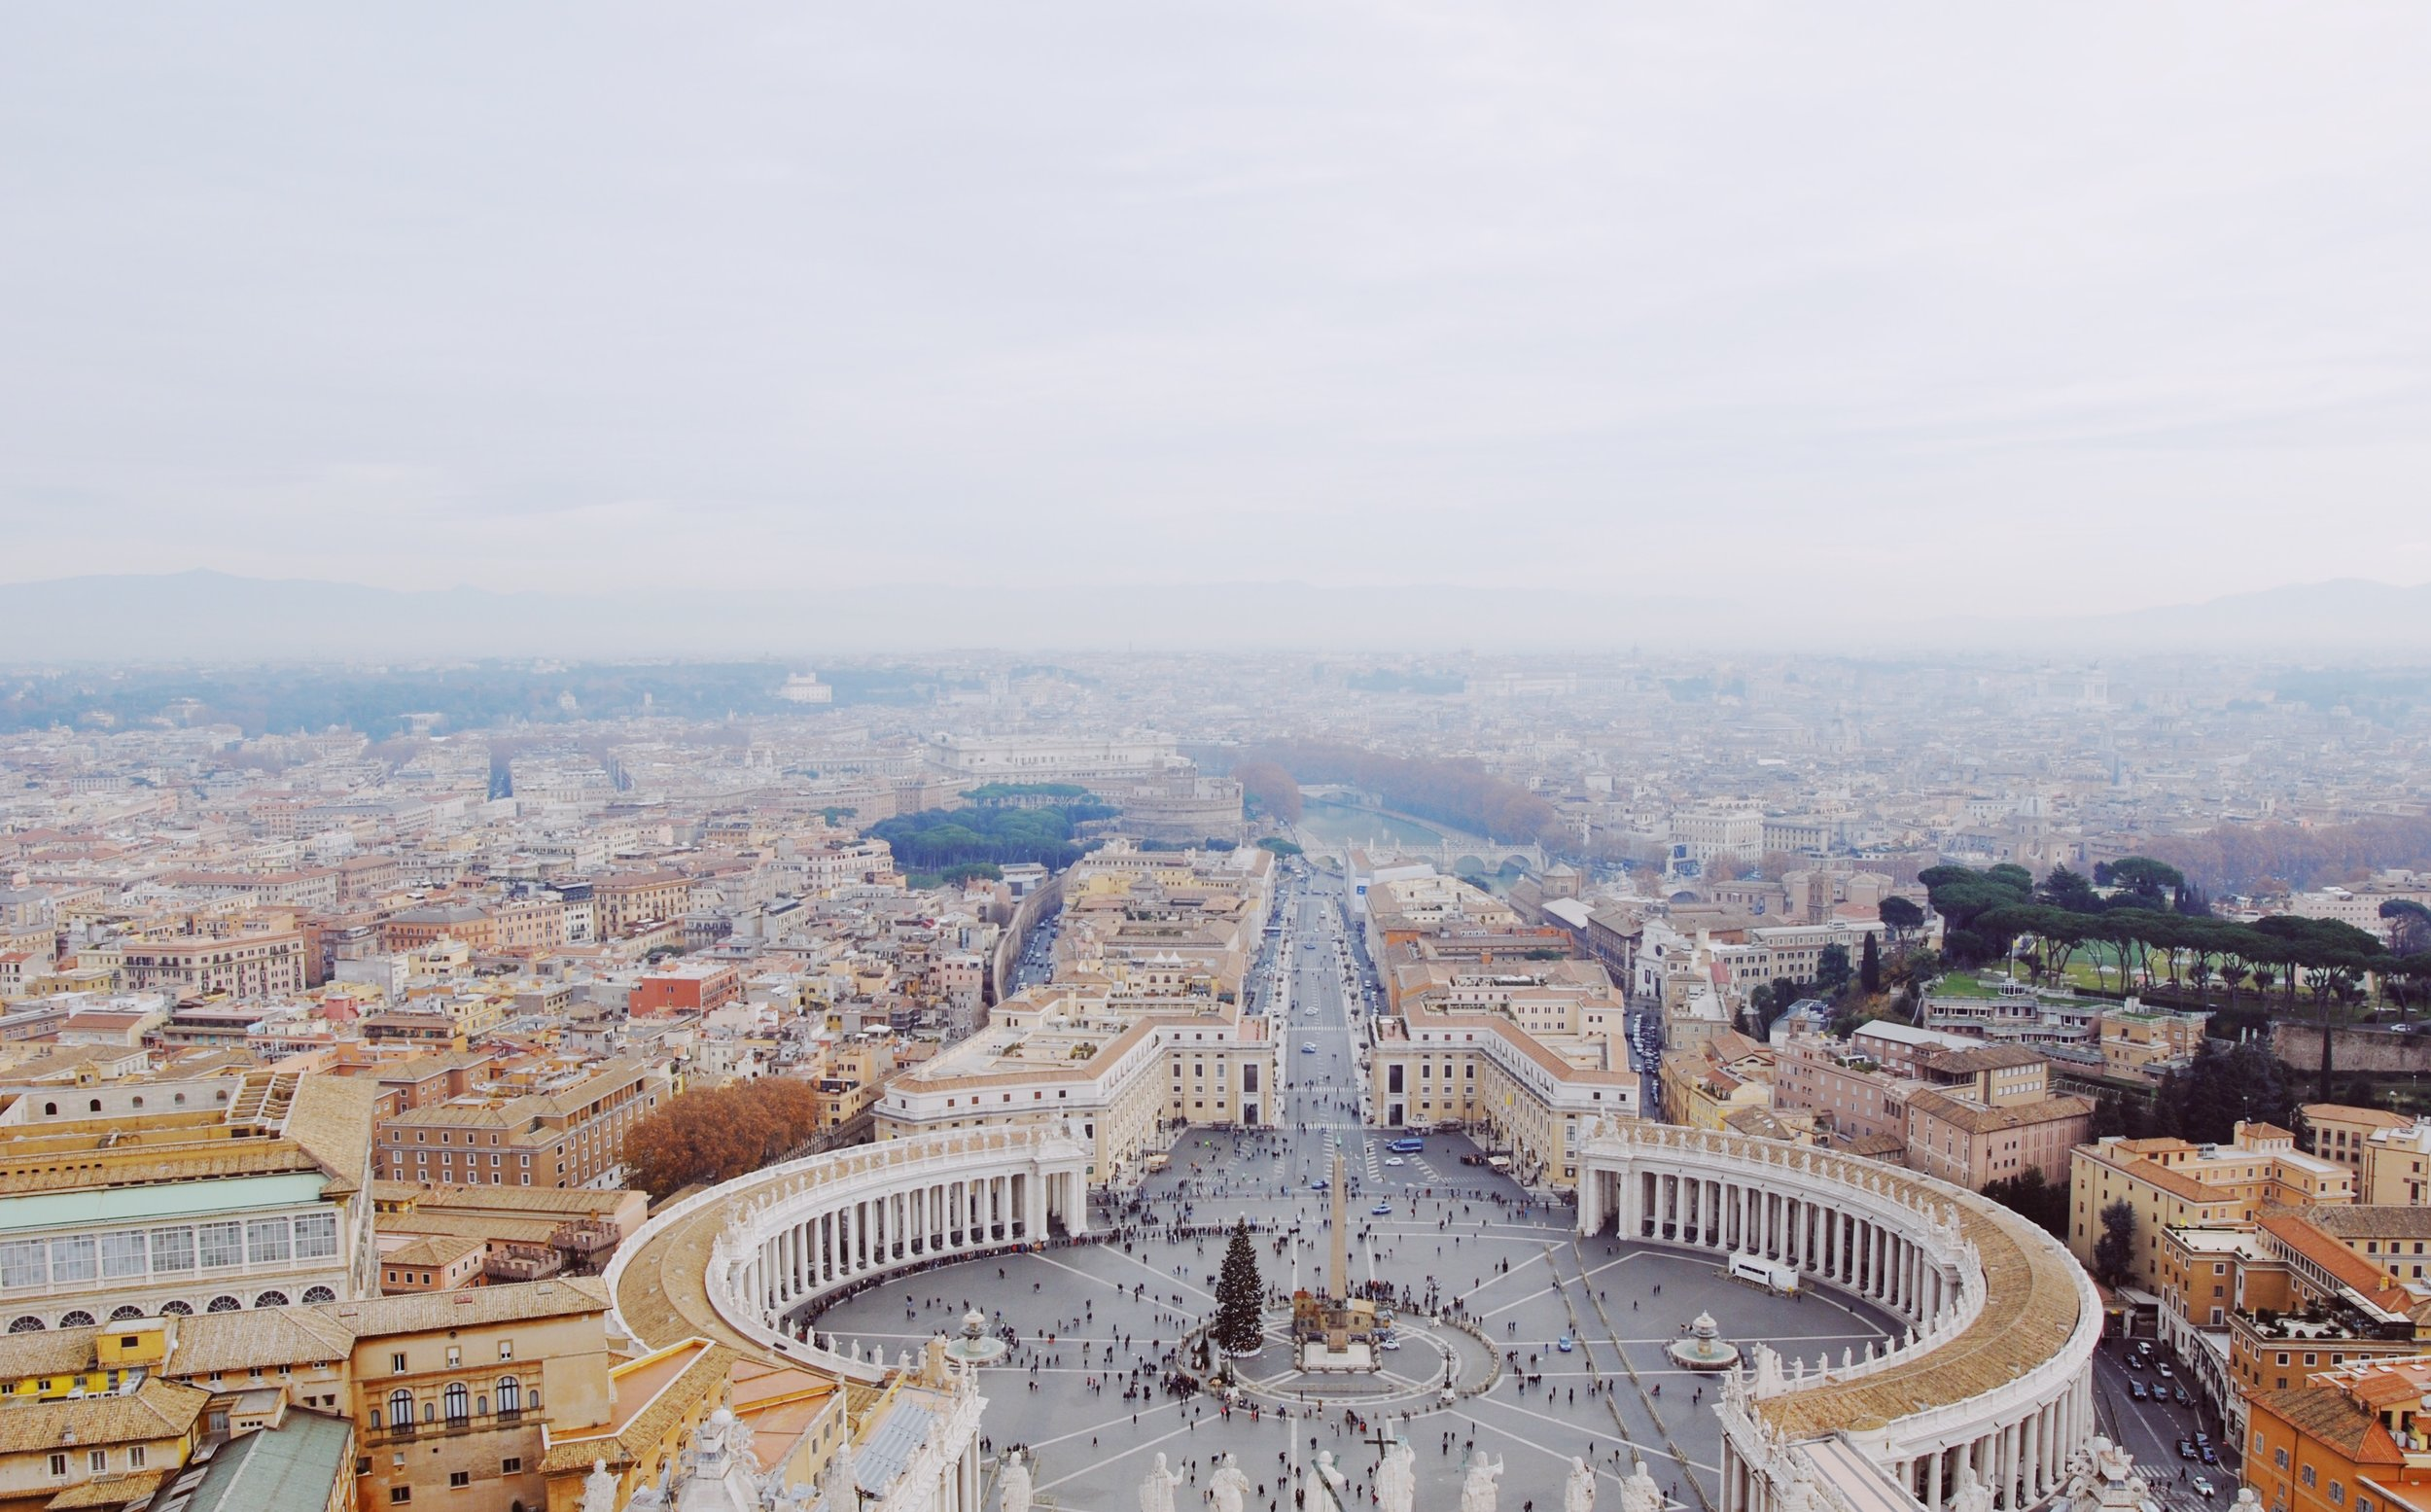 View from the top of St. Peter's Basilica following the climb